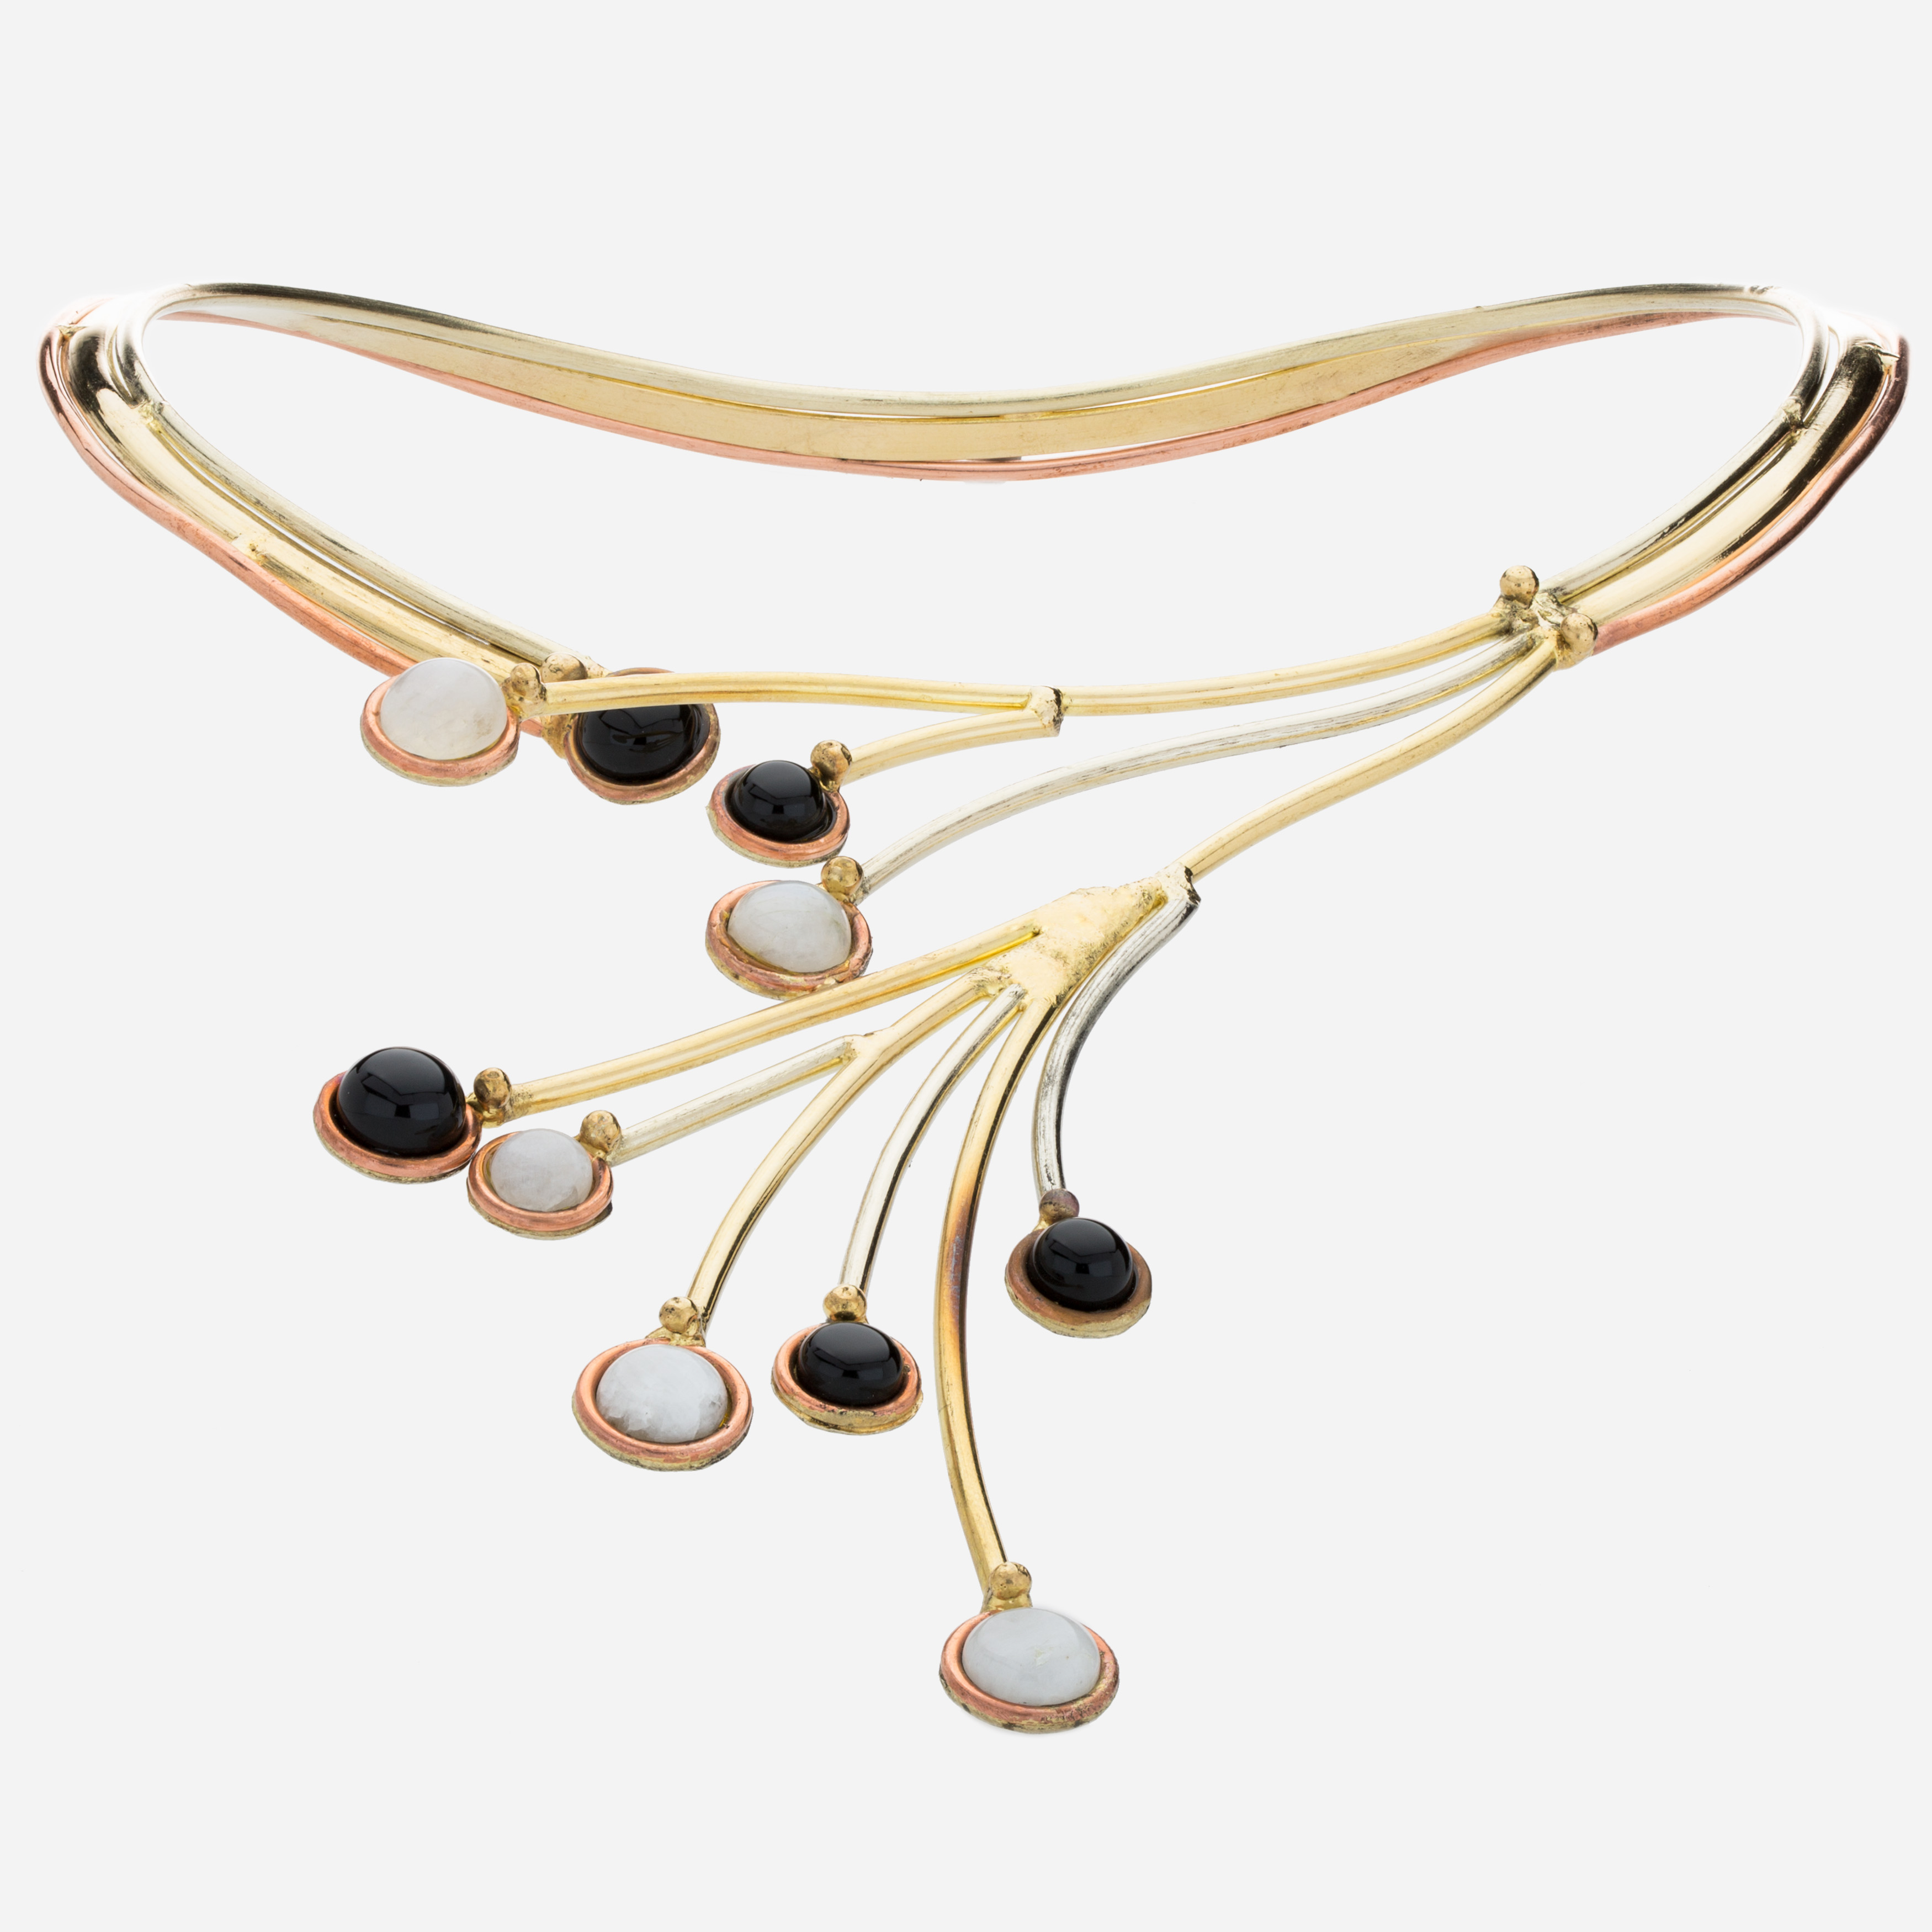 Tara Mesa Black Onyx & Labradorite Collar Necklace Crafted in German Silver—with an Accent of Brass and Copper